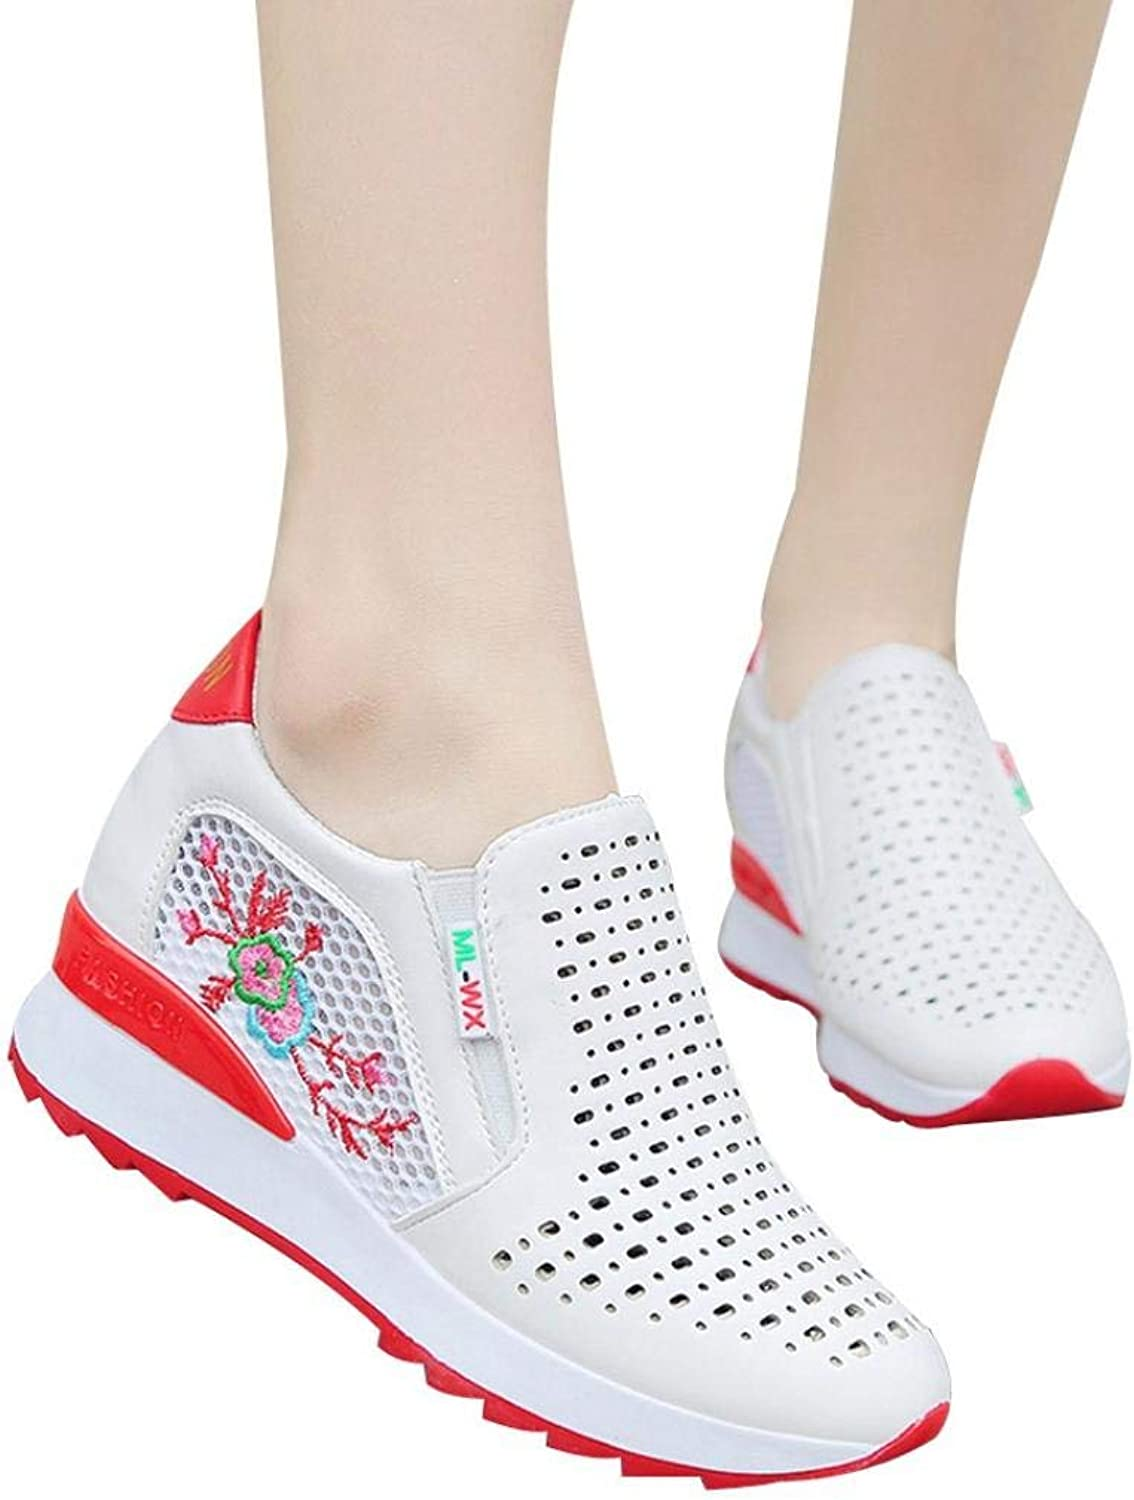 2018 Newest Girls Mesh Hollow Out Sneaker Inner Increase Casual Sports shoes Embroidered shoes (US 5.5, Red)